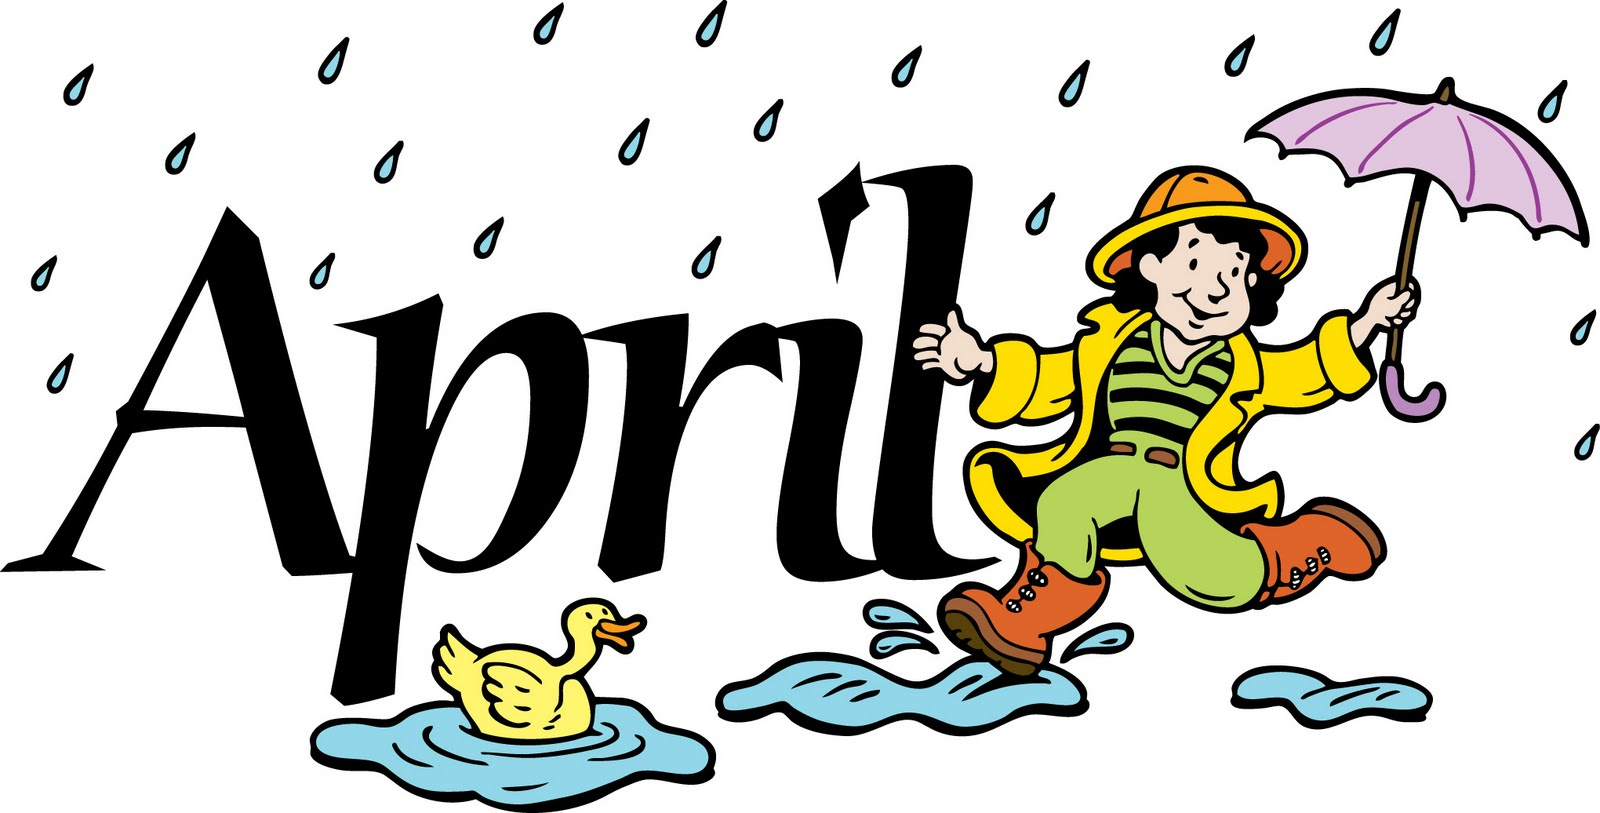 hight resolution of free month of april clip art clipart image